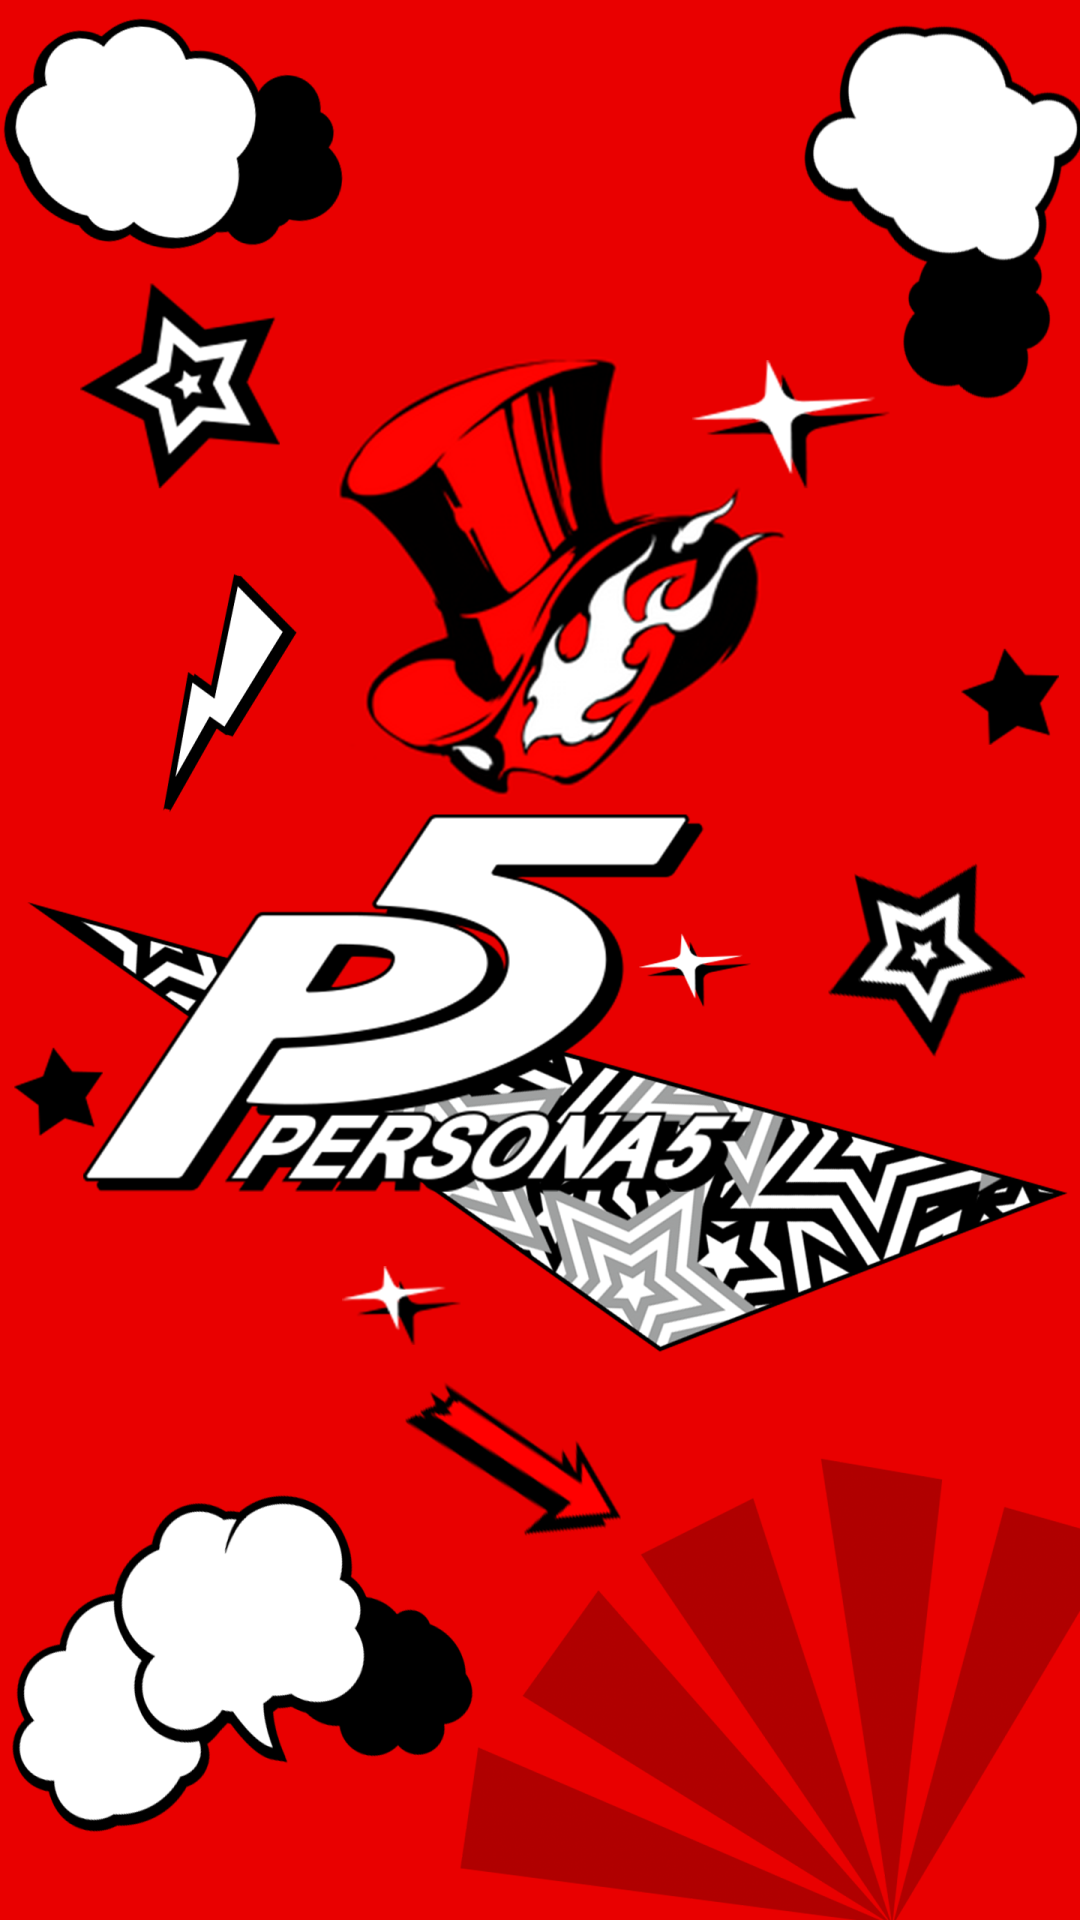 Persona 5 Joker Wallpaper Iphone in 2020 Persona 5 joker